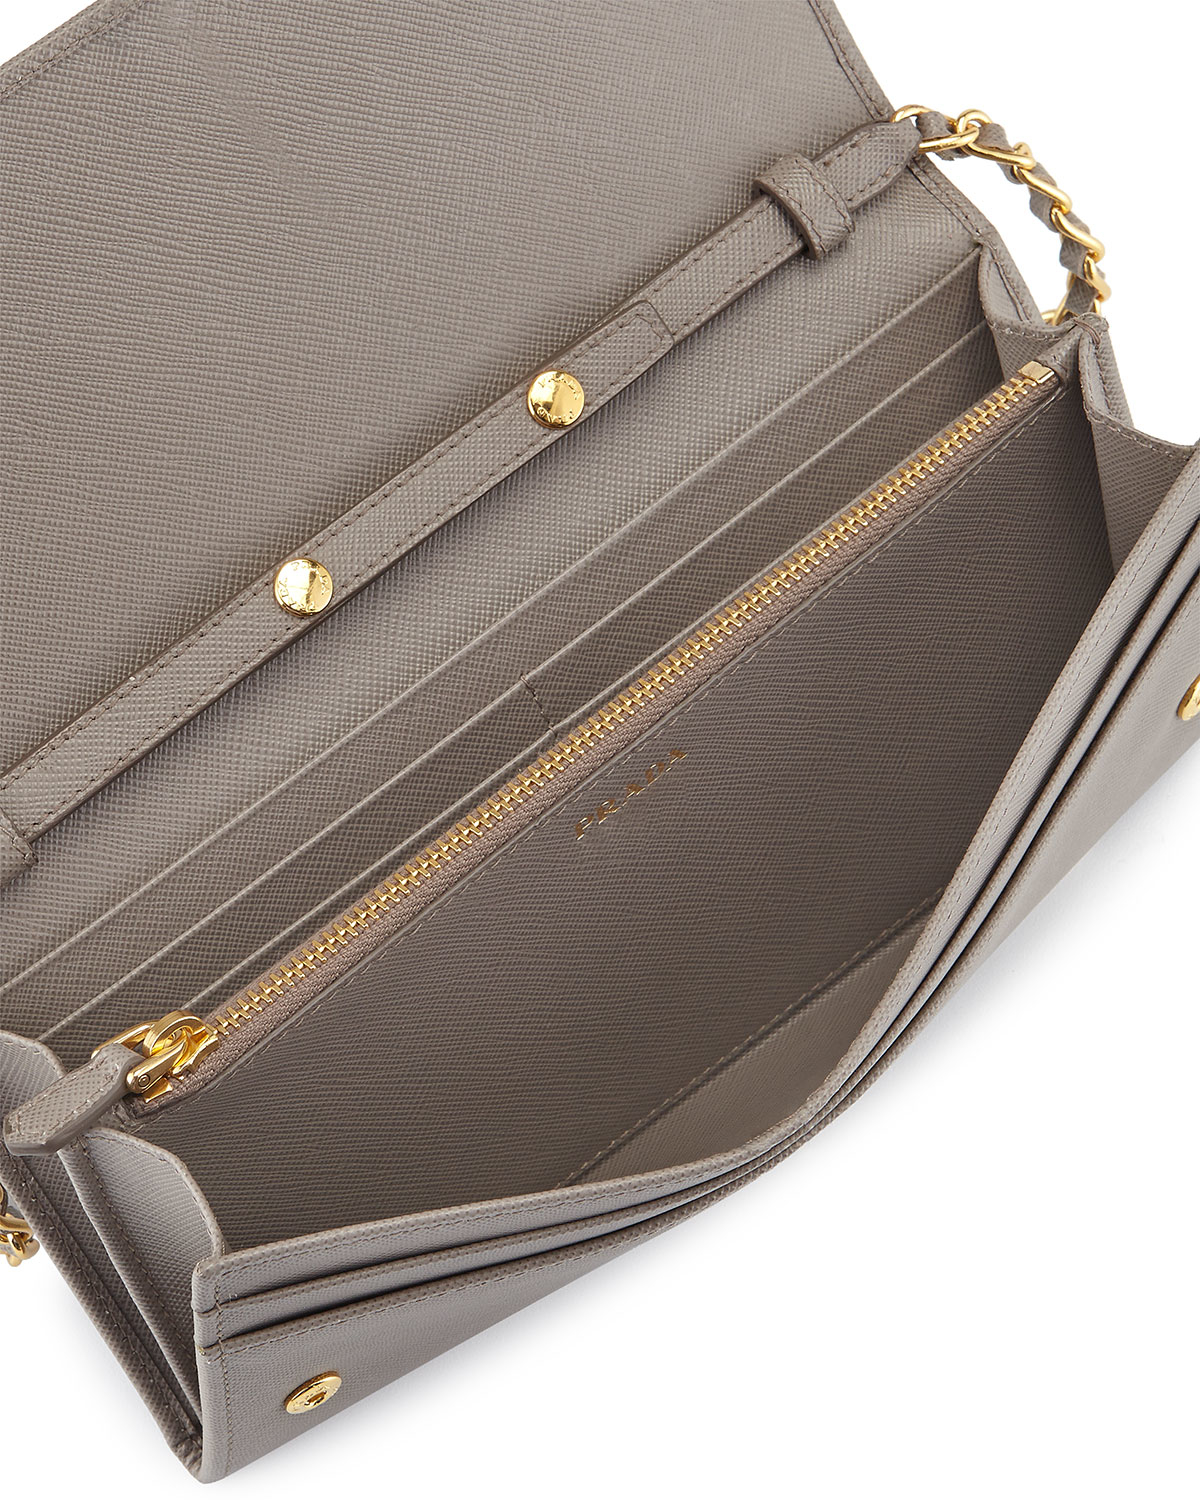 62fb9ff6b8be ... reduced lyst prada saffiano leather wallet on chain bag in natural  8154d 0cfd0